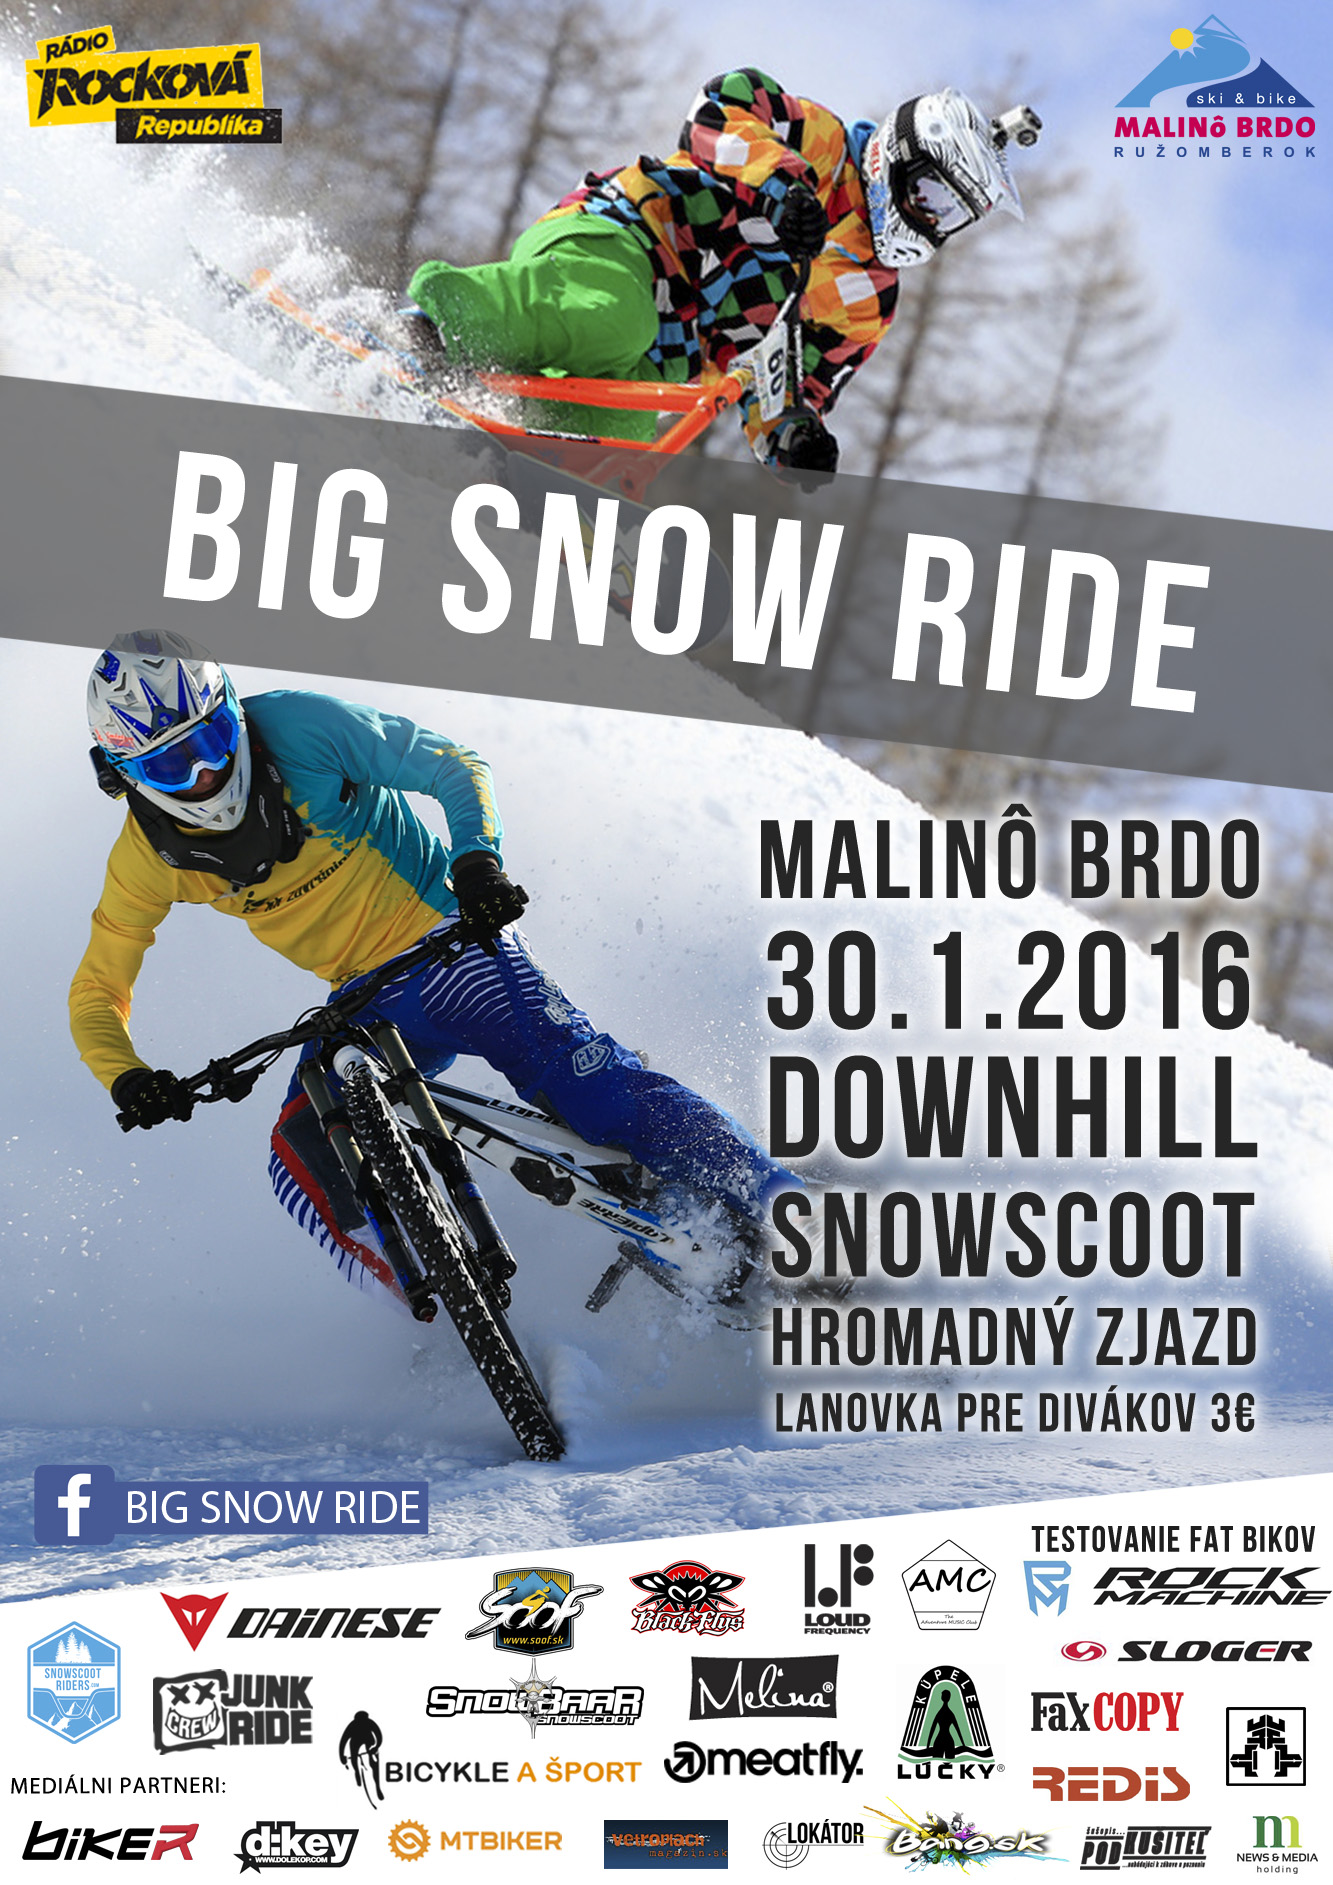 pr-big-snow-ride-malino-brdo-